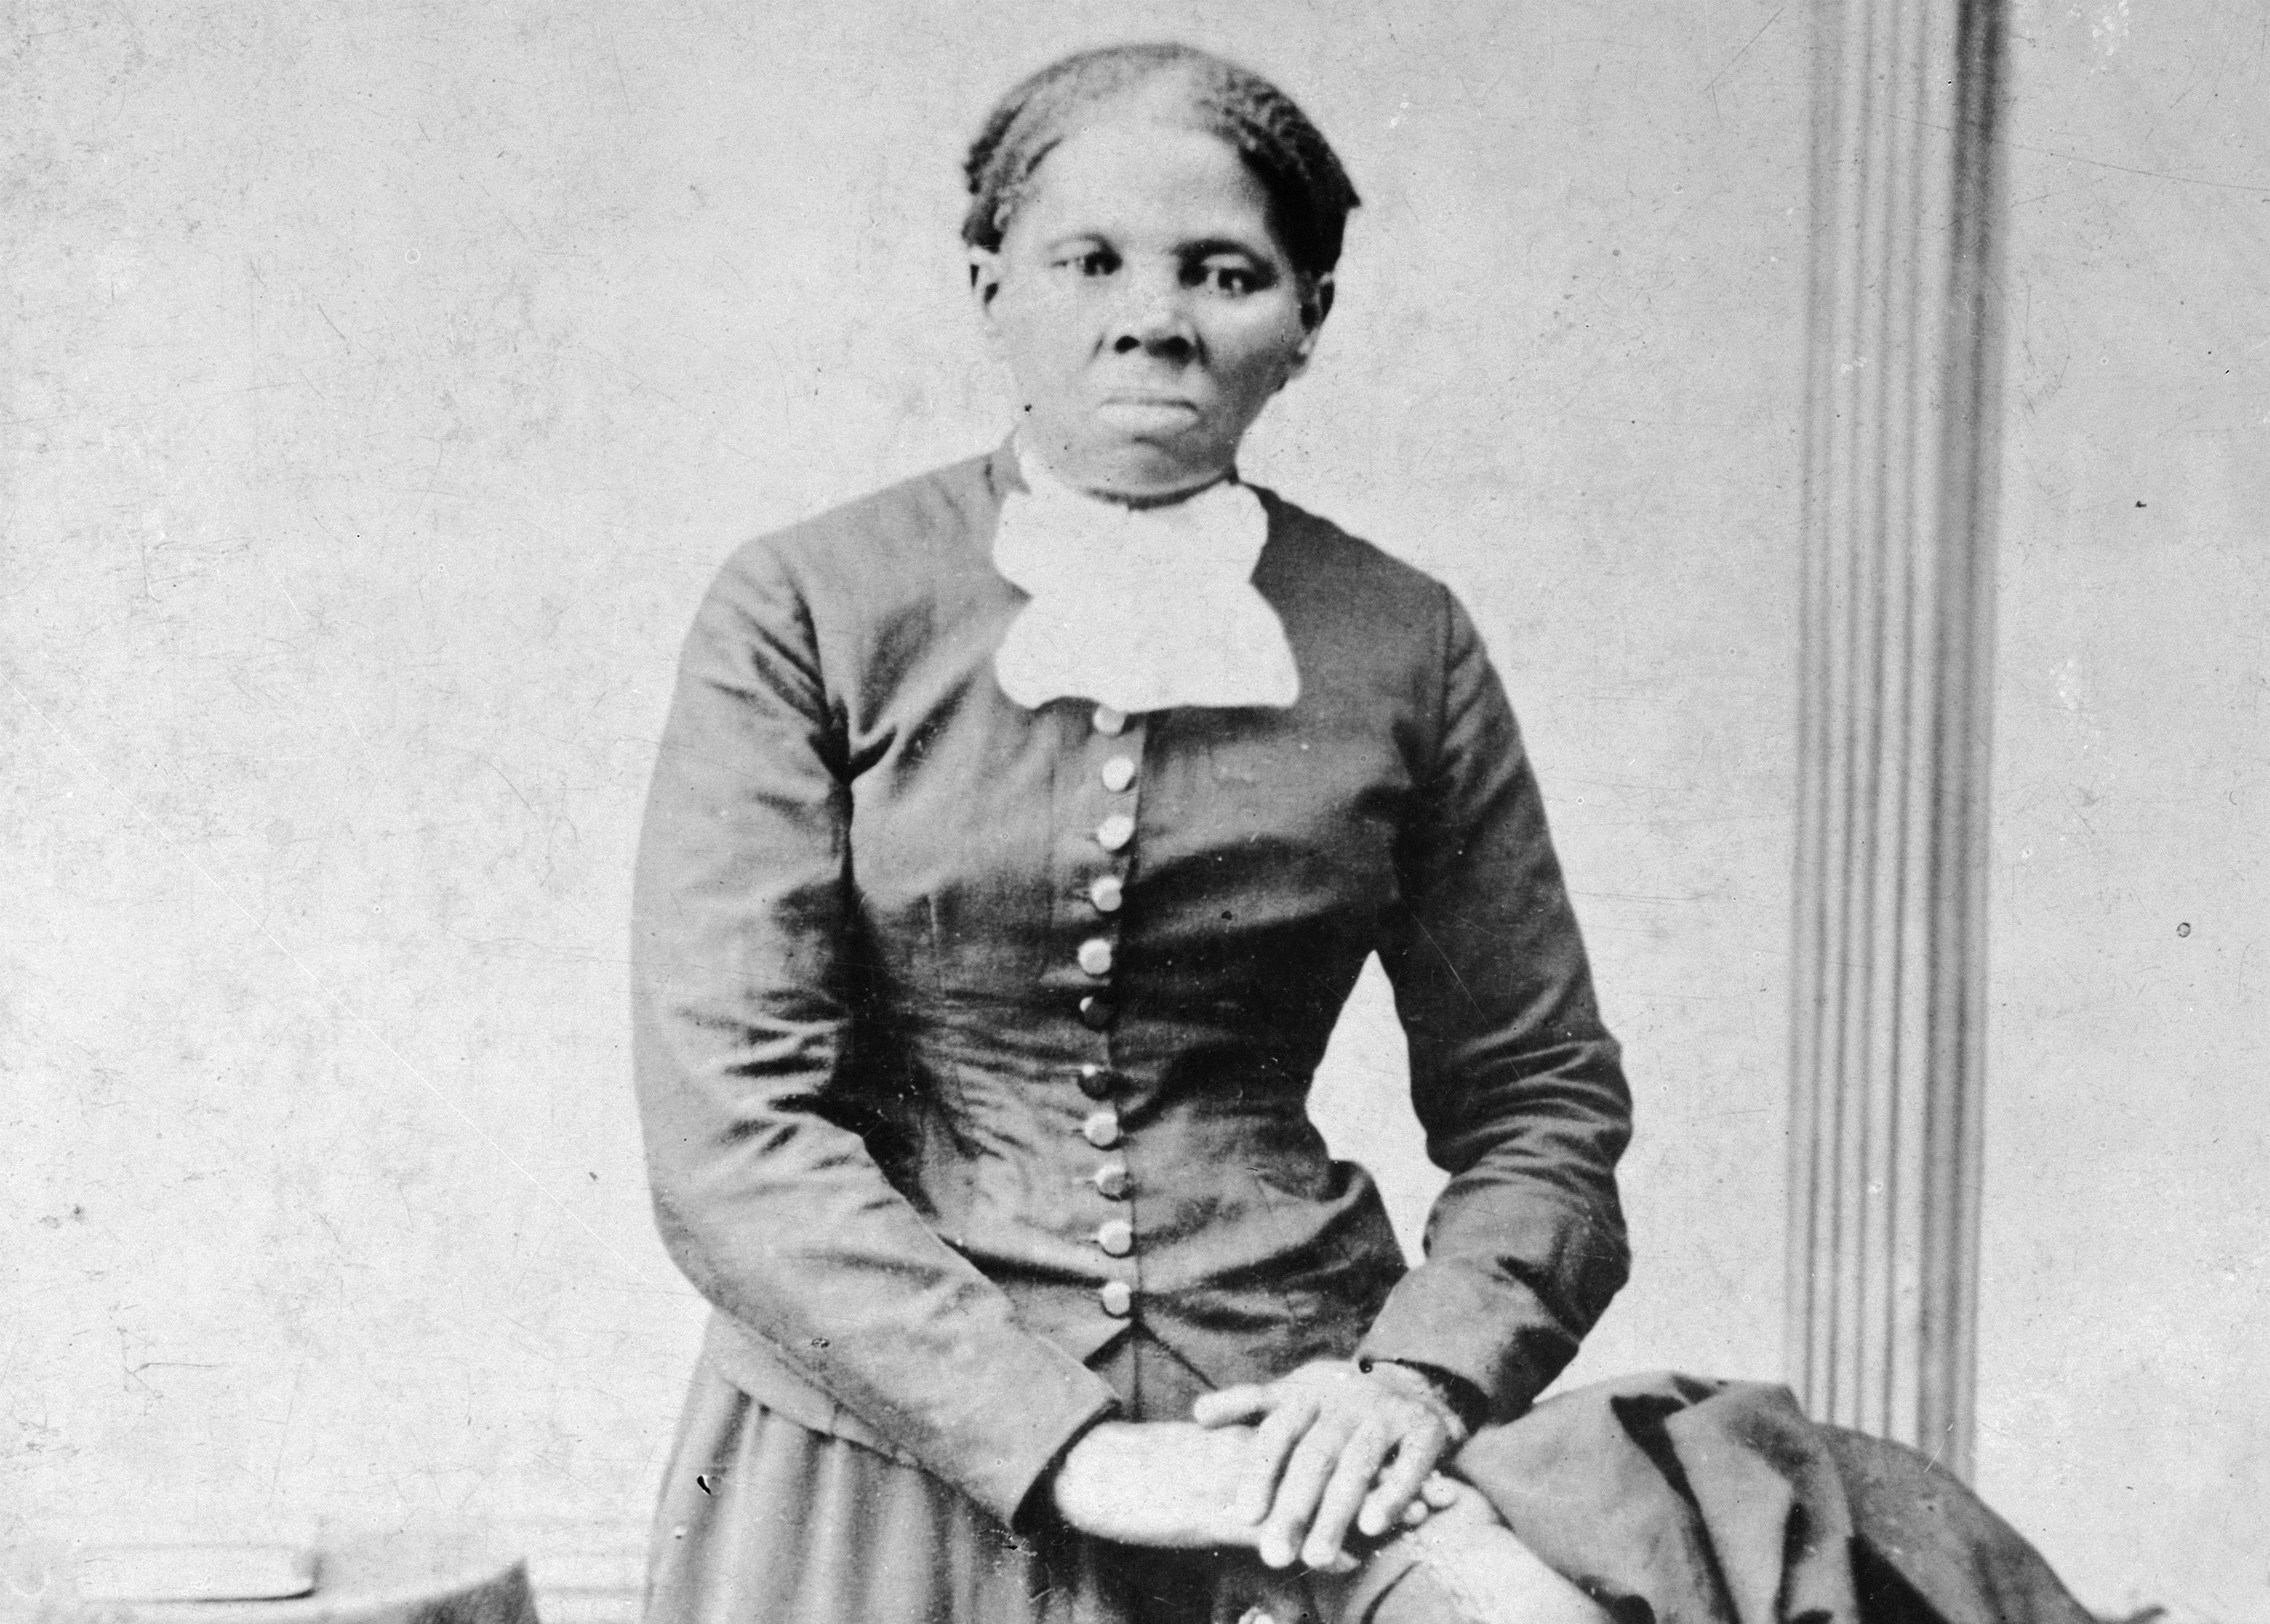 an old photo of a Black woman wearing a black tuxedo jacket with a white tie